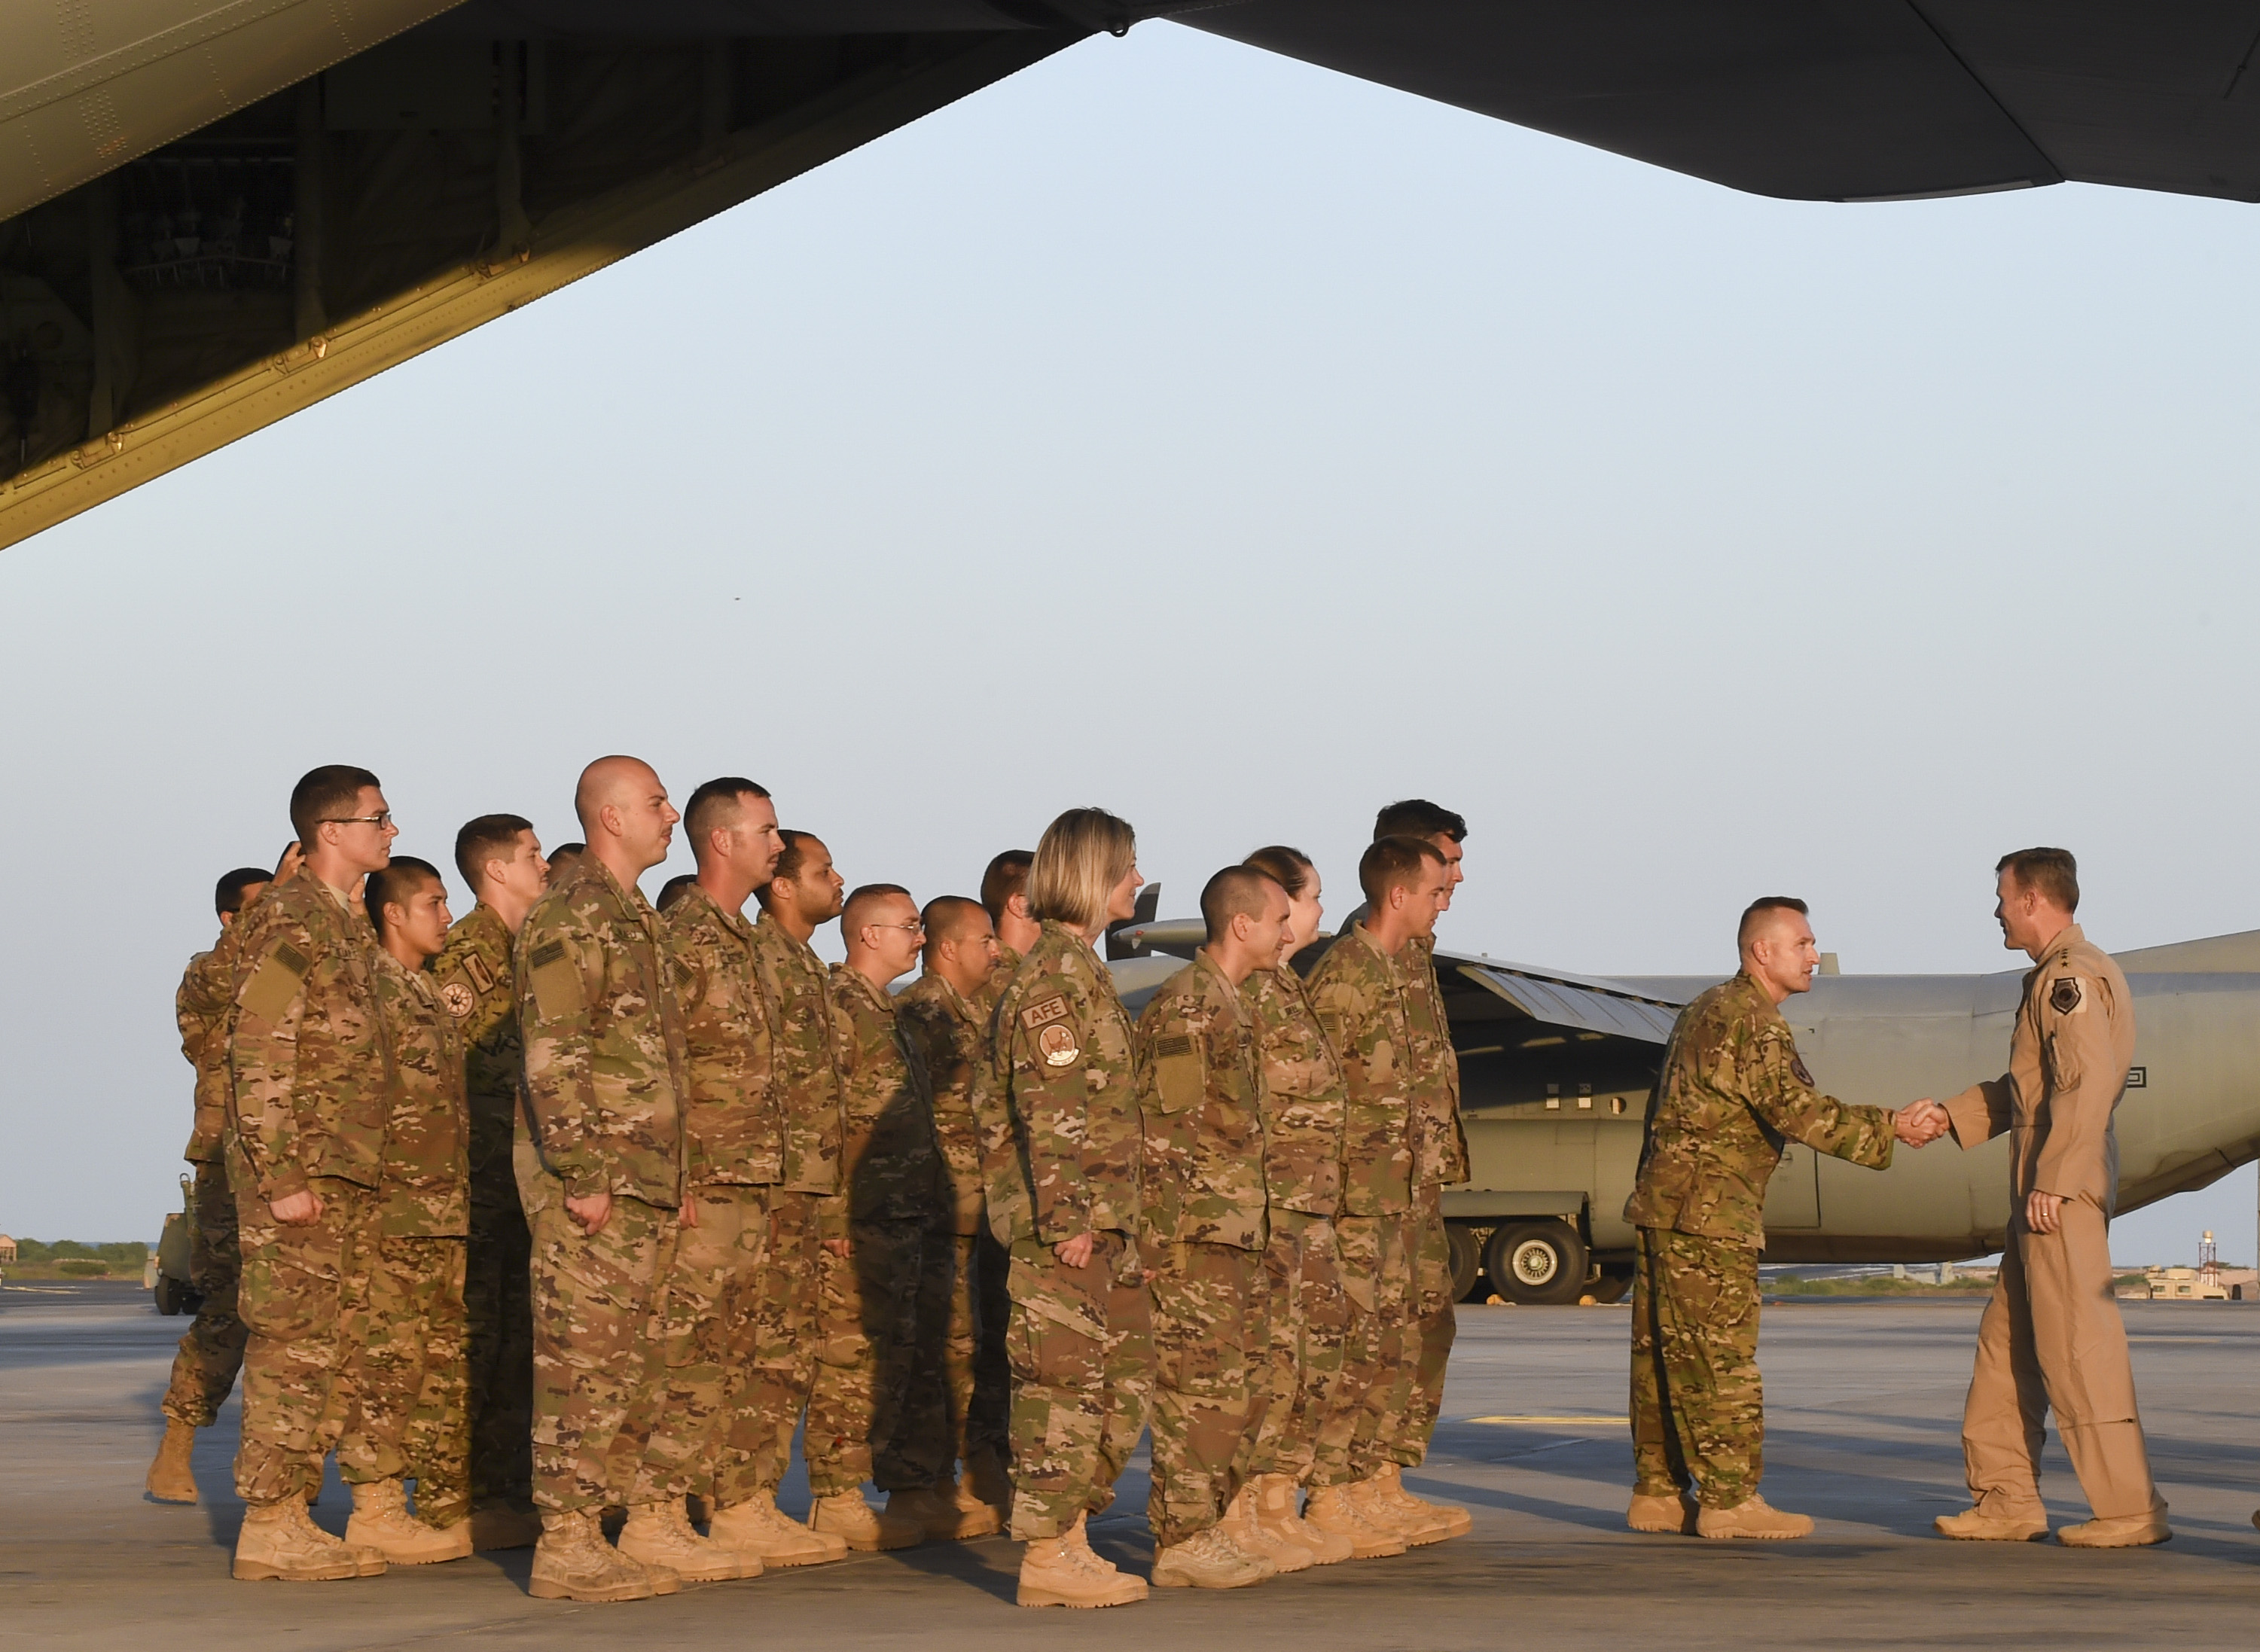 U.S. Air Force Gen. Tod Wolters, commander U.S. Air Forces in Europe and Air Forces Africa (USAFE-AFAFRICA), greets members of the 75th Expeditionary Airlift Squadron and U.S. Air Force joint terminal attack controllers at Camp Lemonnier, Djibouti, Feb. 1, 2017. Wolters visited with U.S. Air Force members in Djibouti to gain insight into the integrated missions and hear about the roles of Airmen in the joint environment. The members assembled nearby their respective aircraft, a C-130J Super Hercules during this portion of the USAFE-AFAFRICA commander's visit.